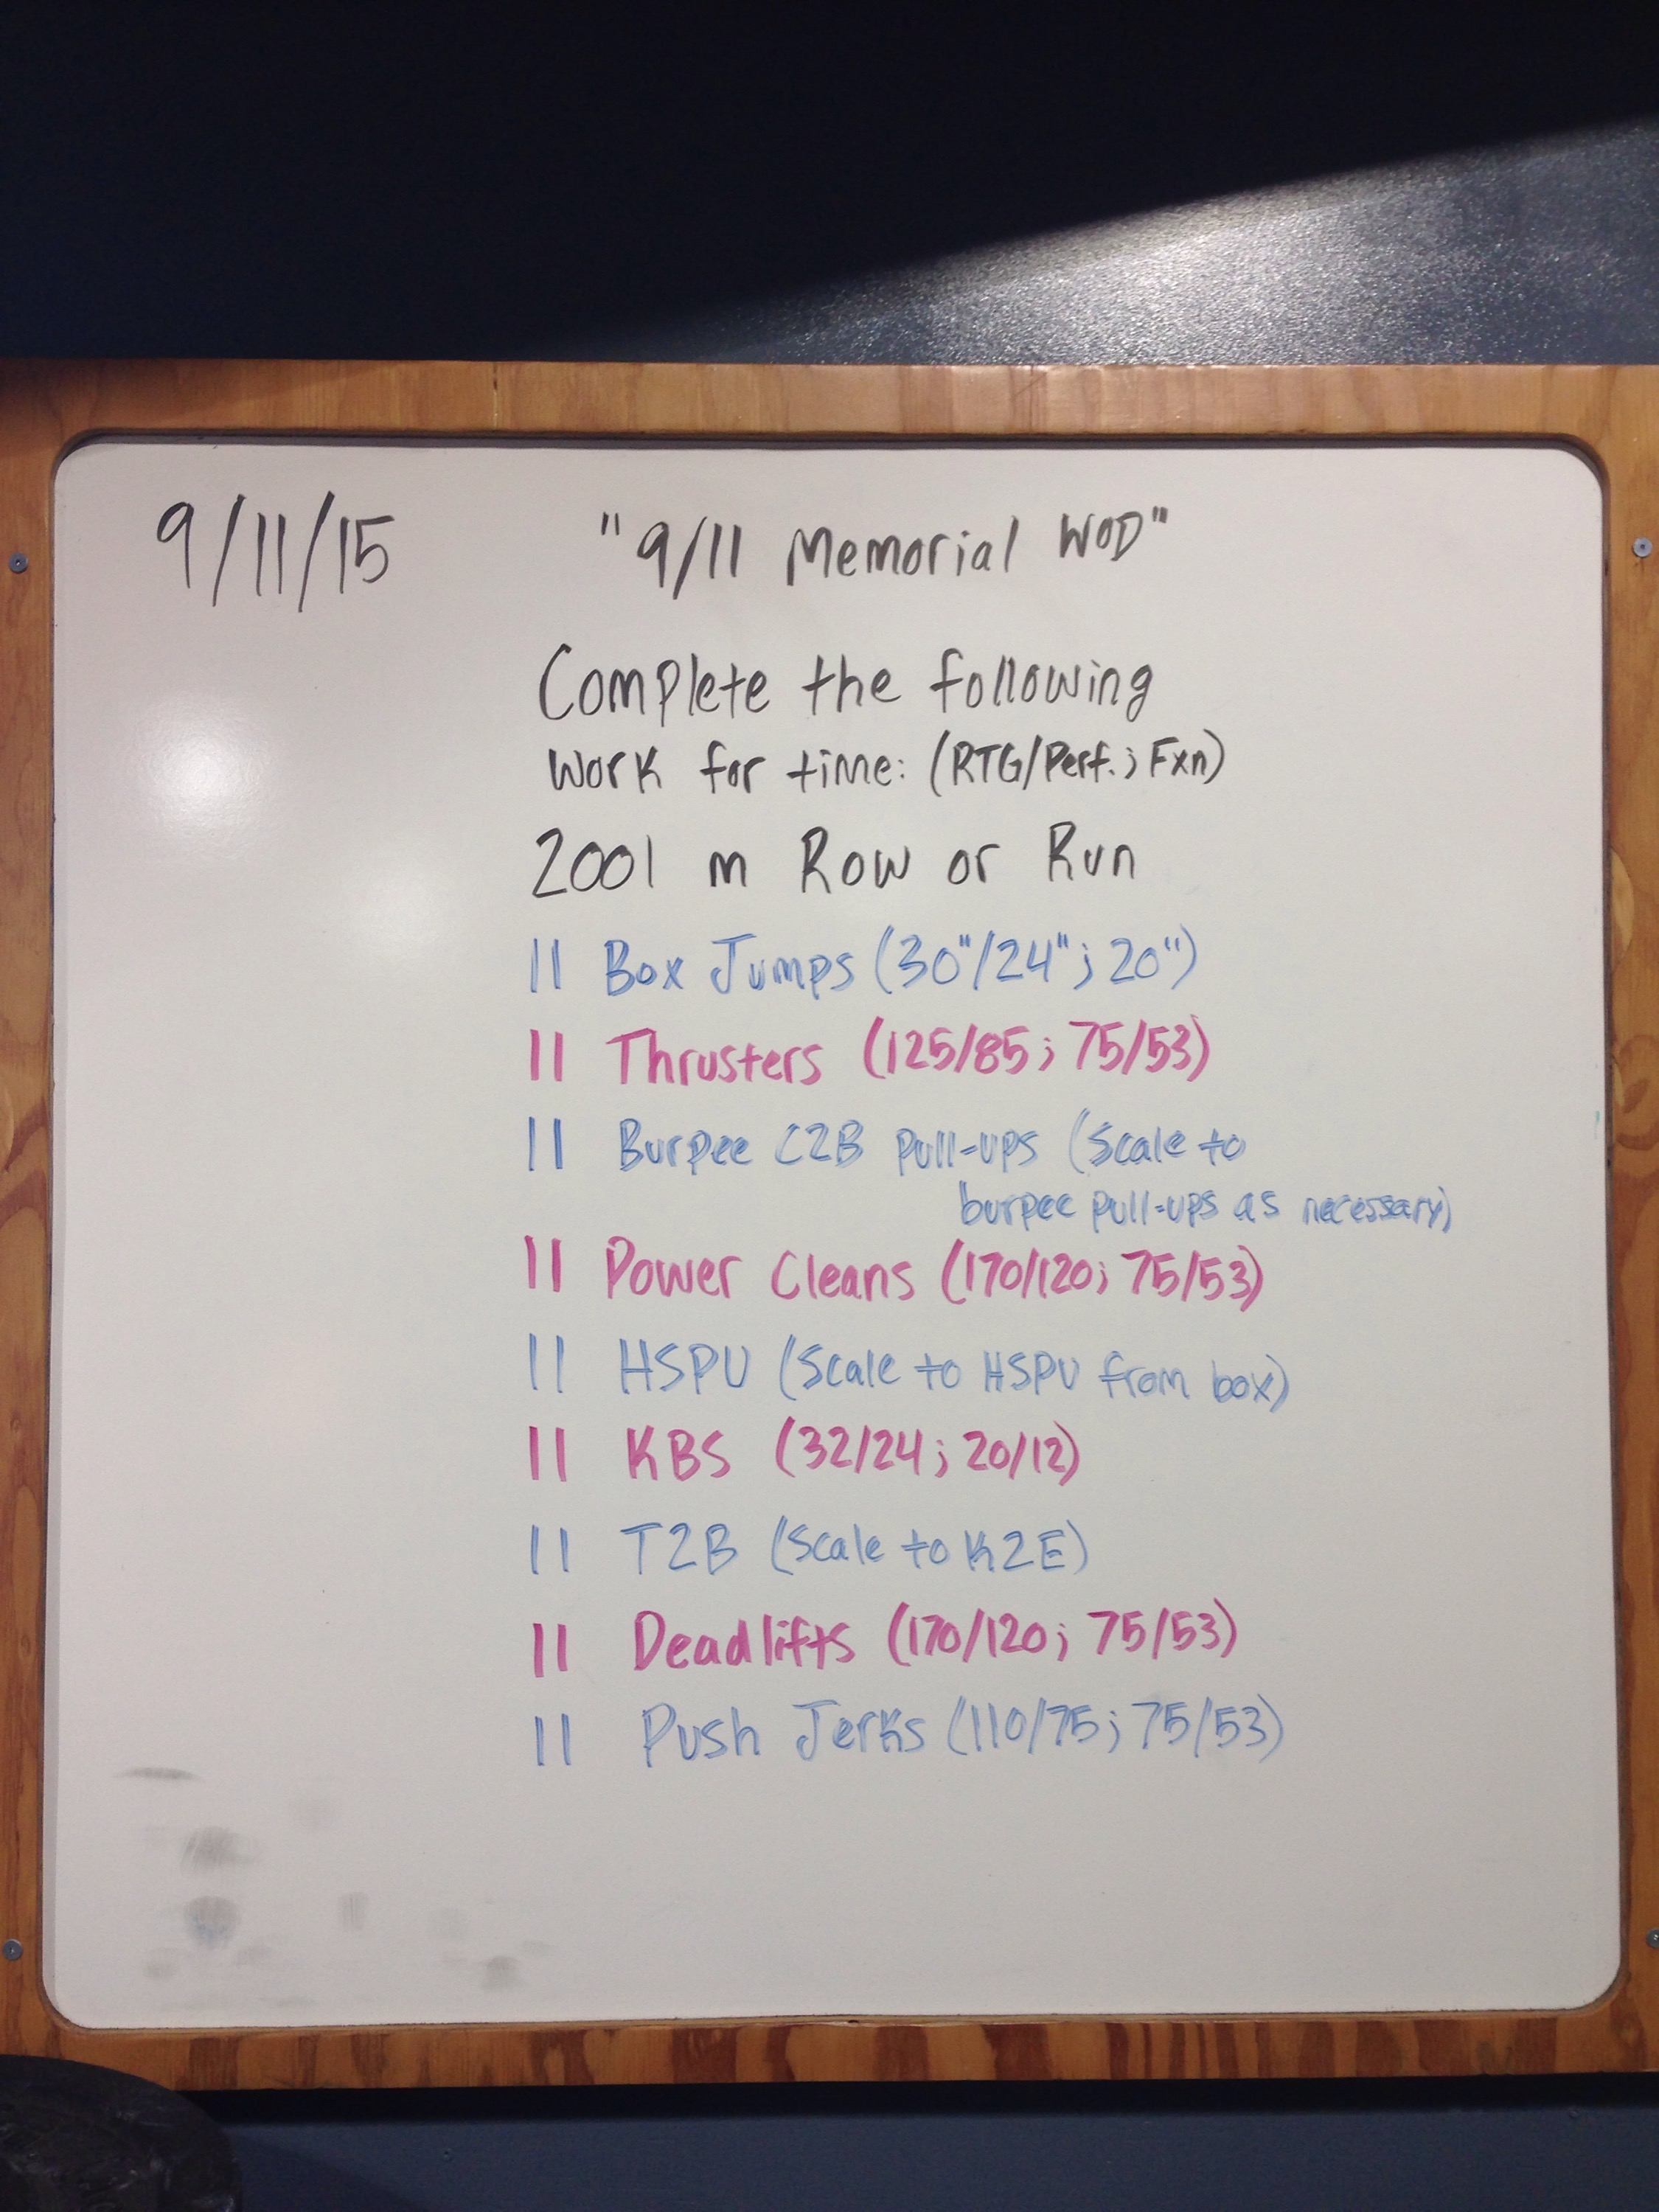 9112015 911 Memorial WOD Result Crossfit Threshold